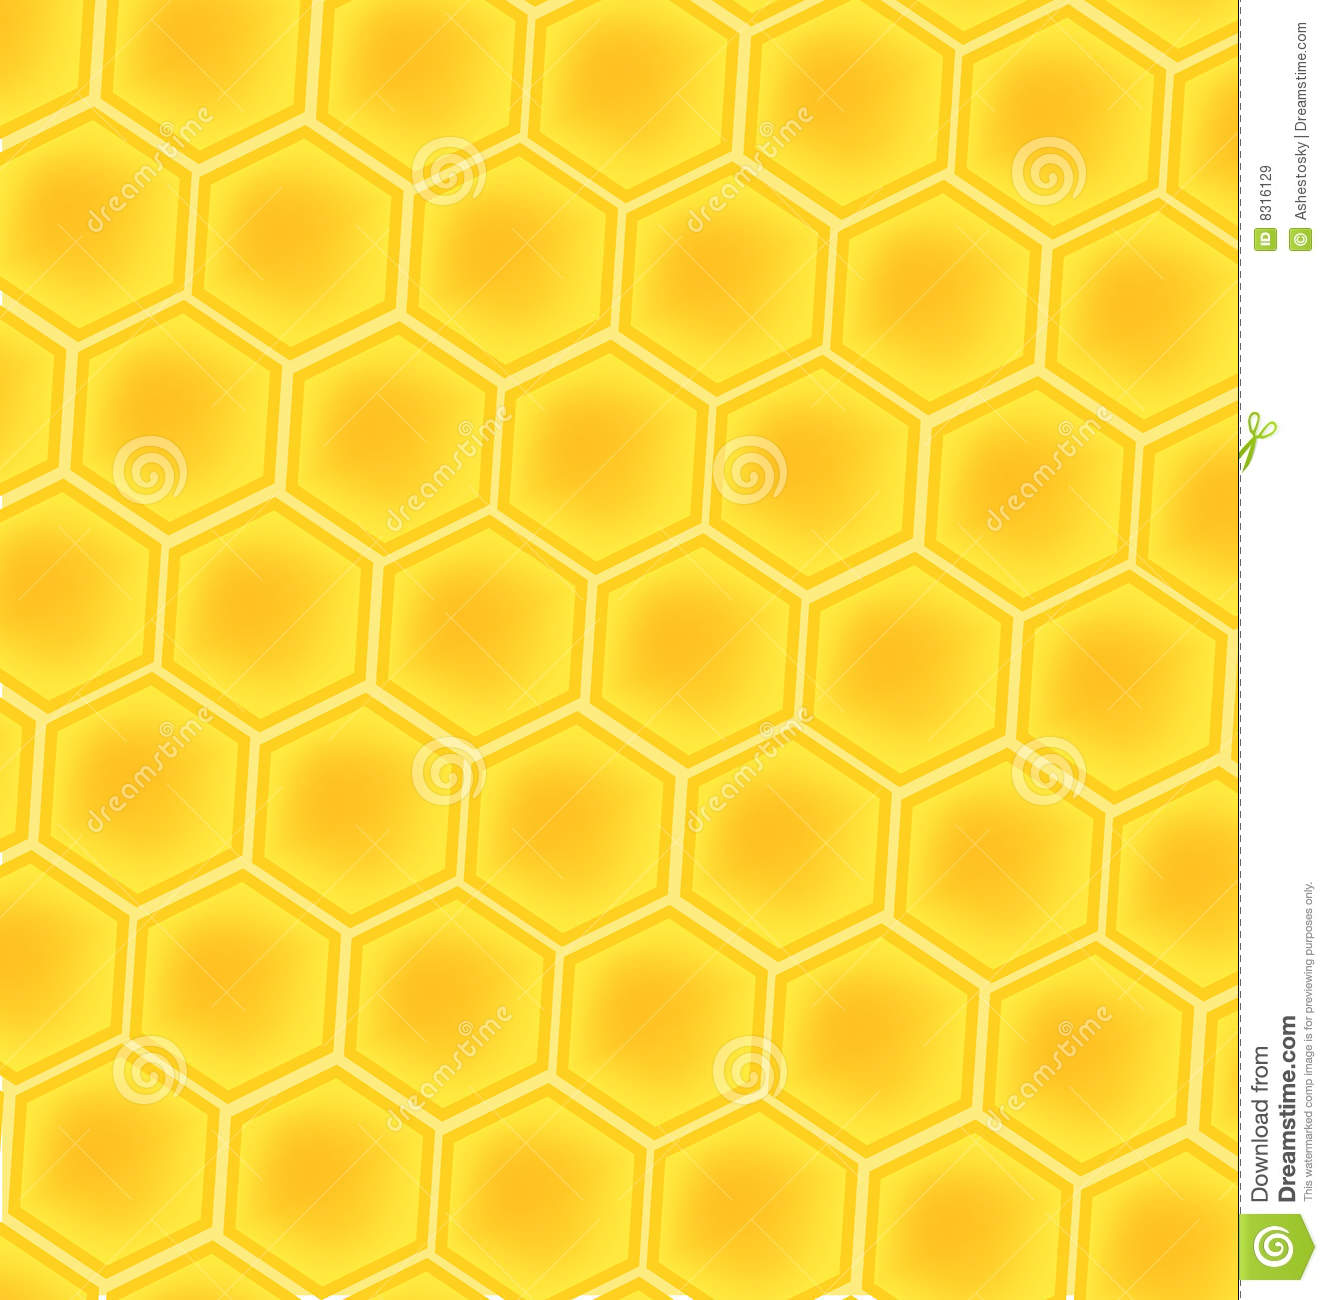 Bee Honey Cells Background Royalty Free Stock Images - Image: 8316129